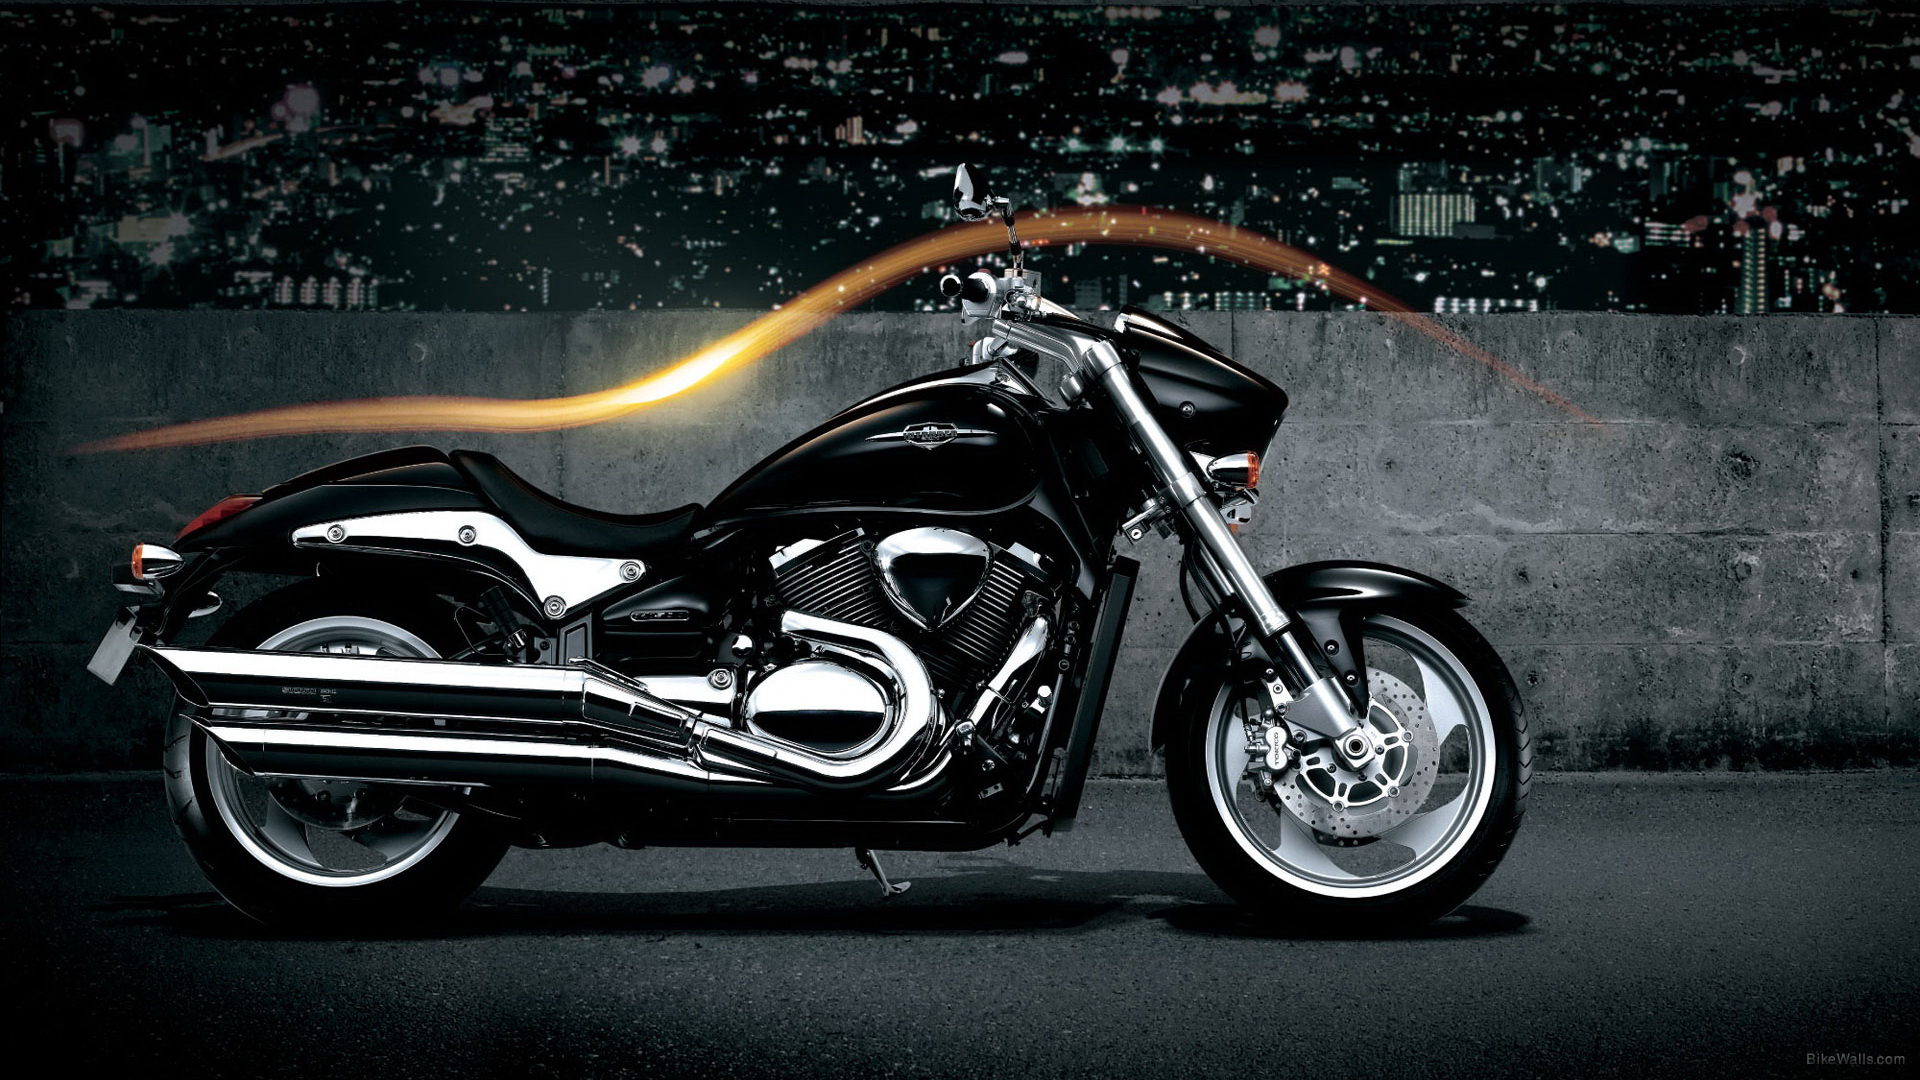 Hd Car Wallpapers 1440x900 2 Suzuki Boulevard M90 Hd Wallpapers Background Images